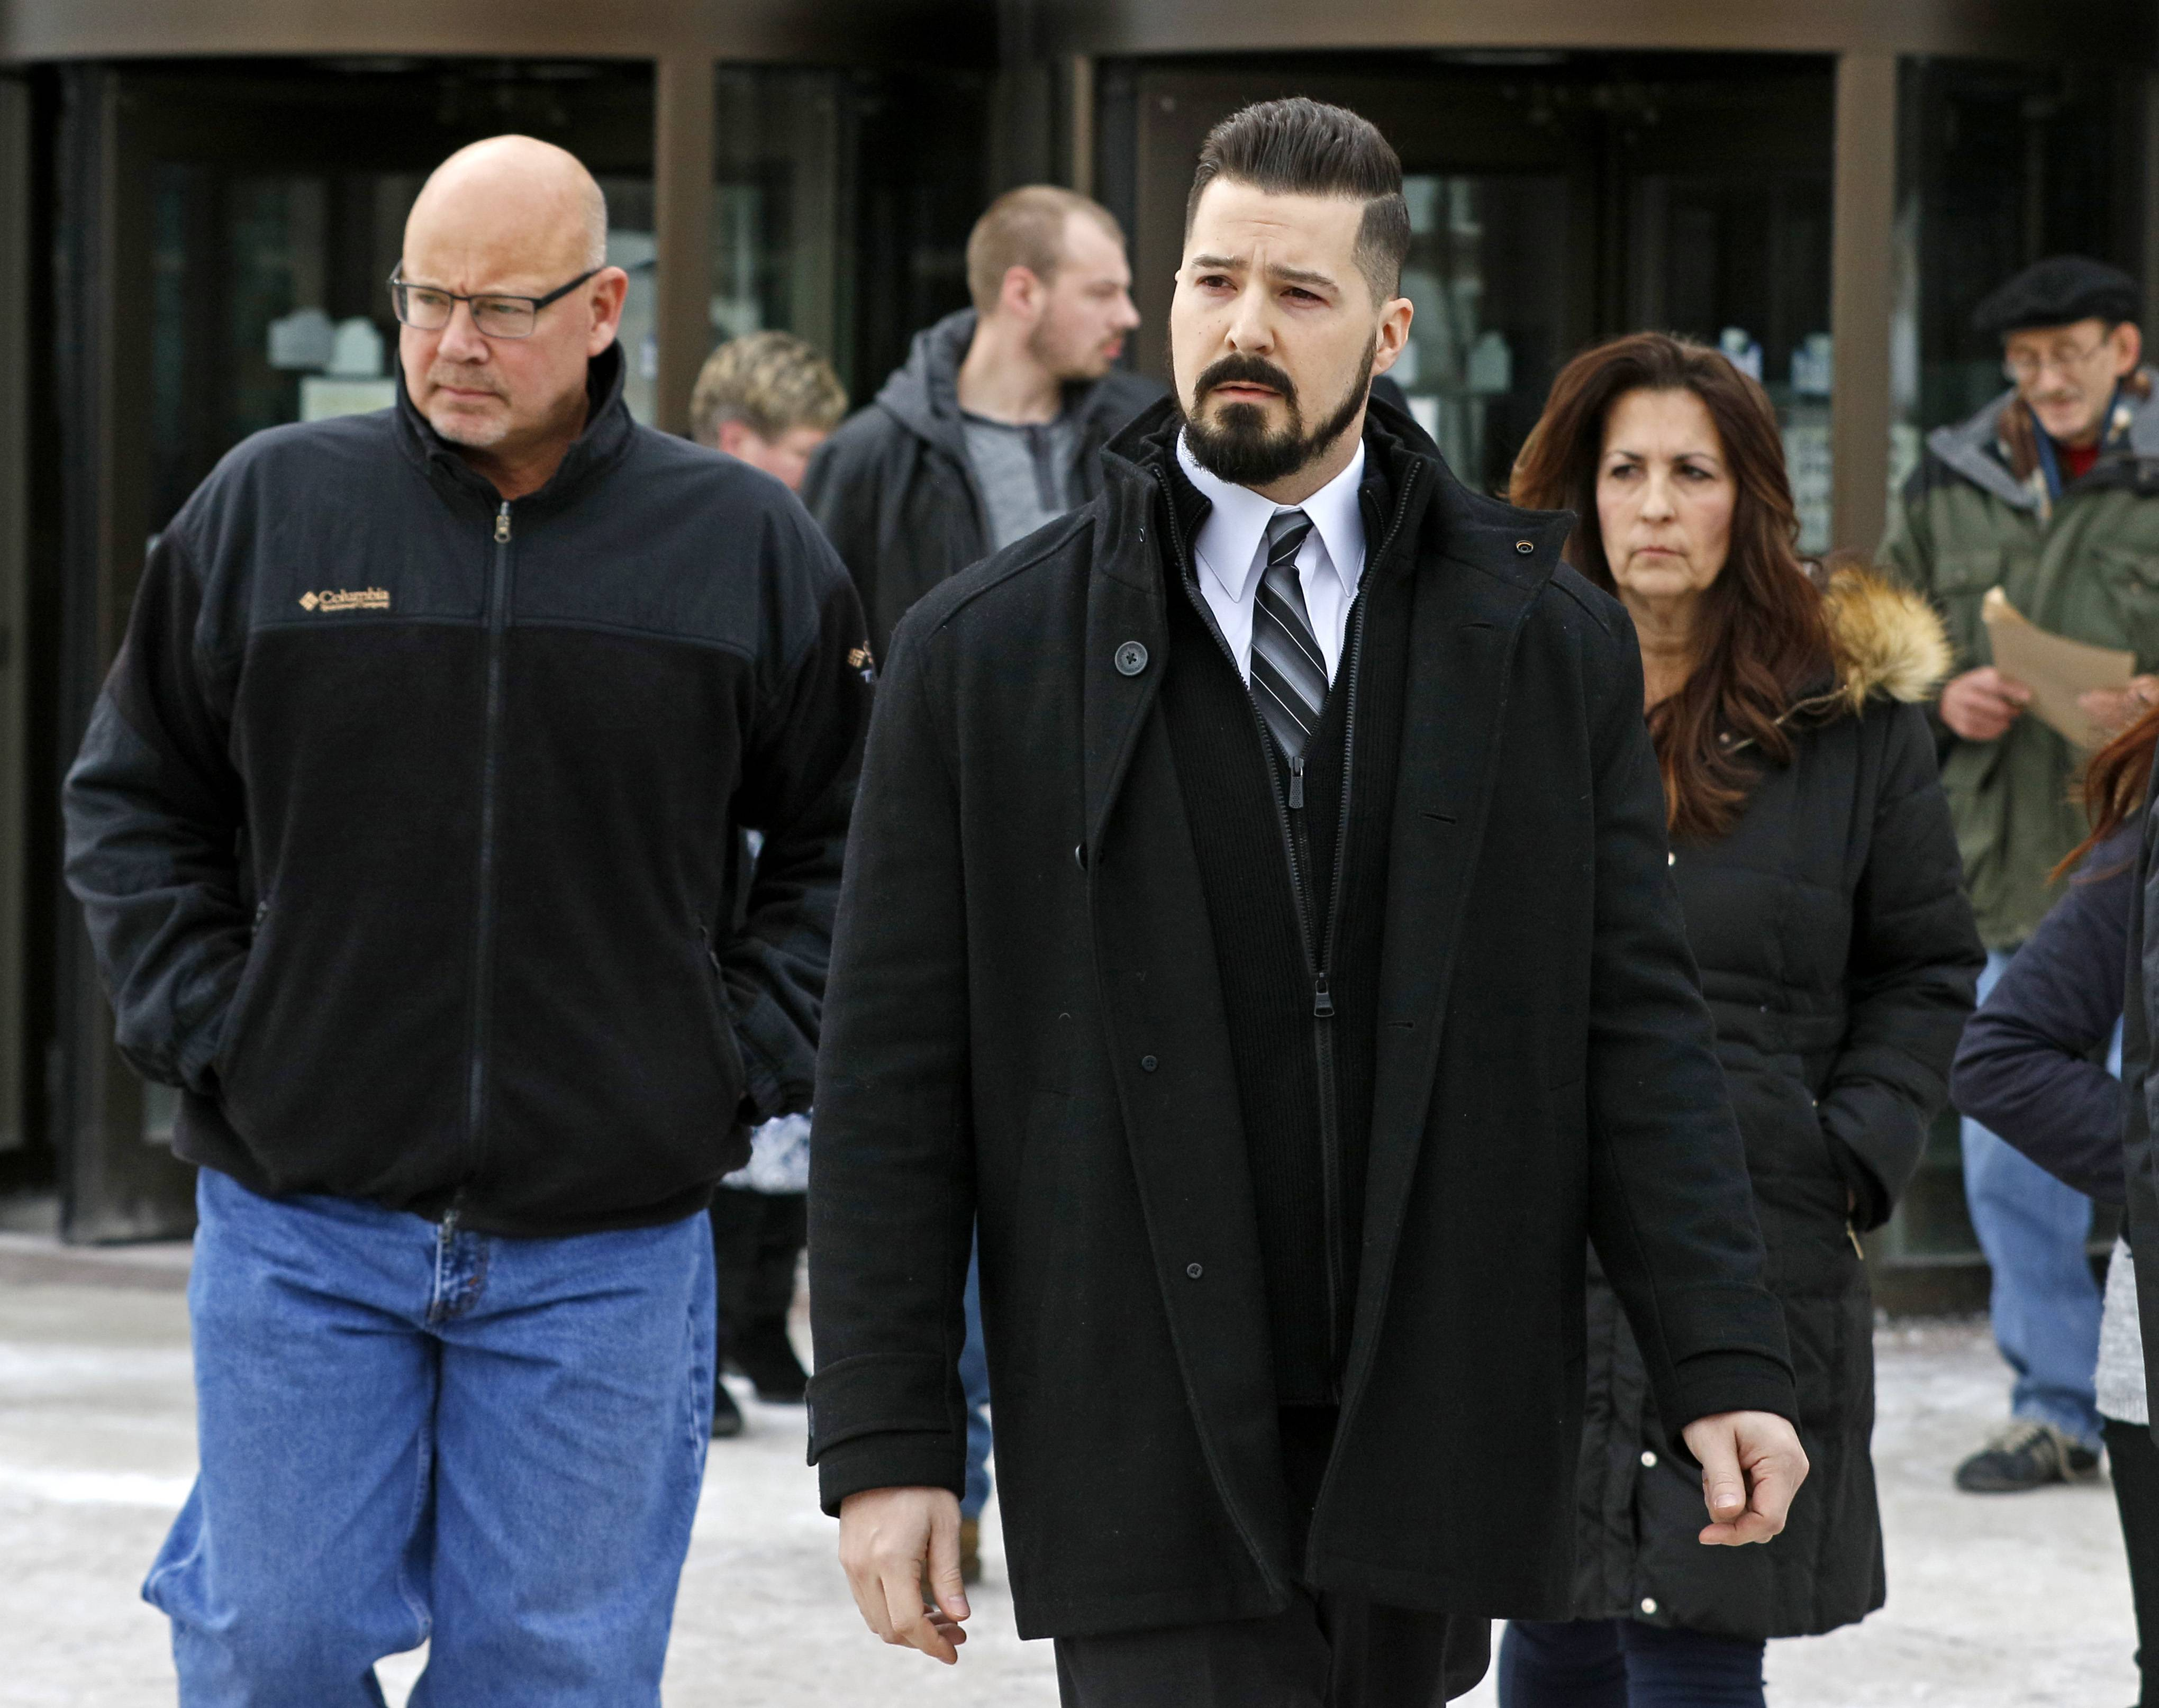 Berlin on why he dropped ex-Schaumburg cop's case: Informant was under investigation